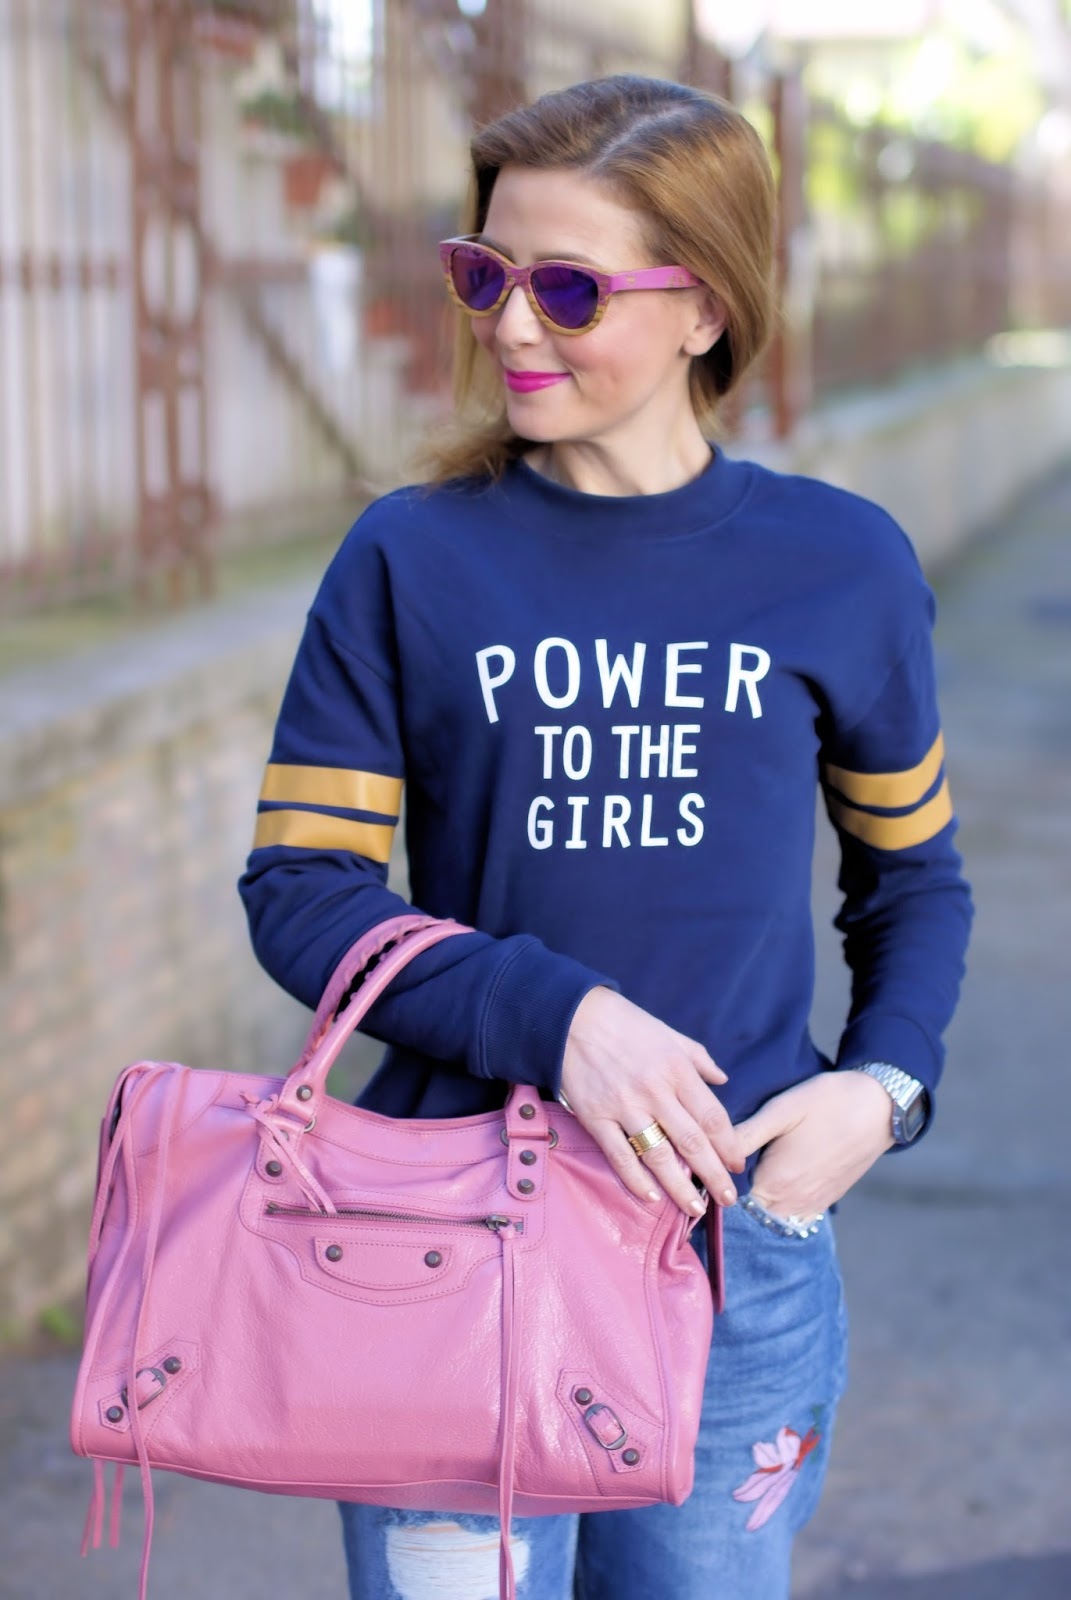 Power to the Girls H&M sweatshirt and Winkwood sunglasses on Fashion and Cookies fashion blog, fashion blogger style